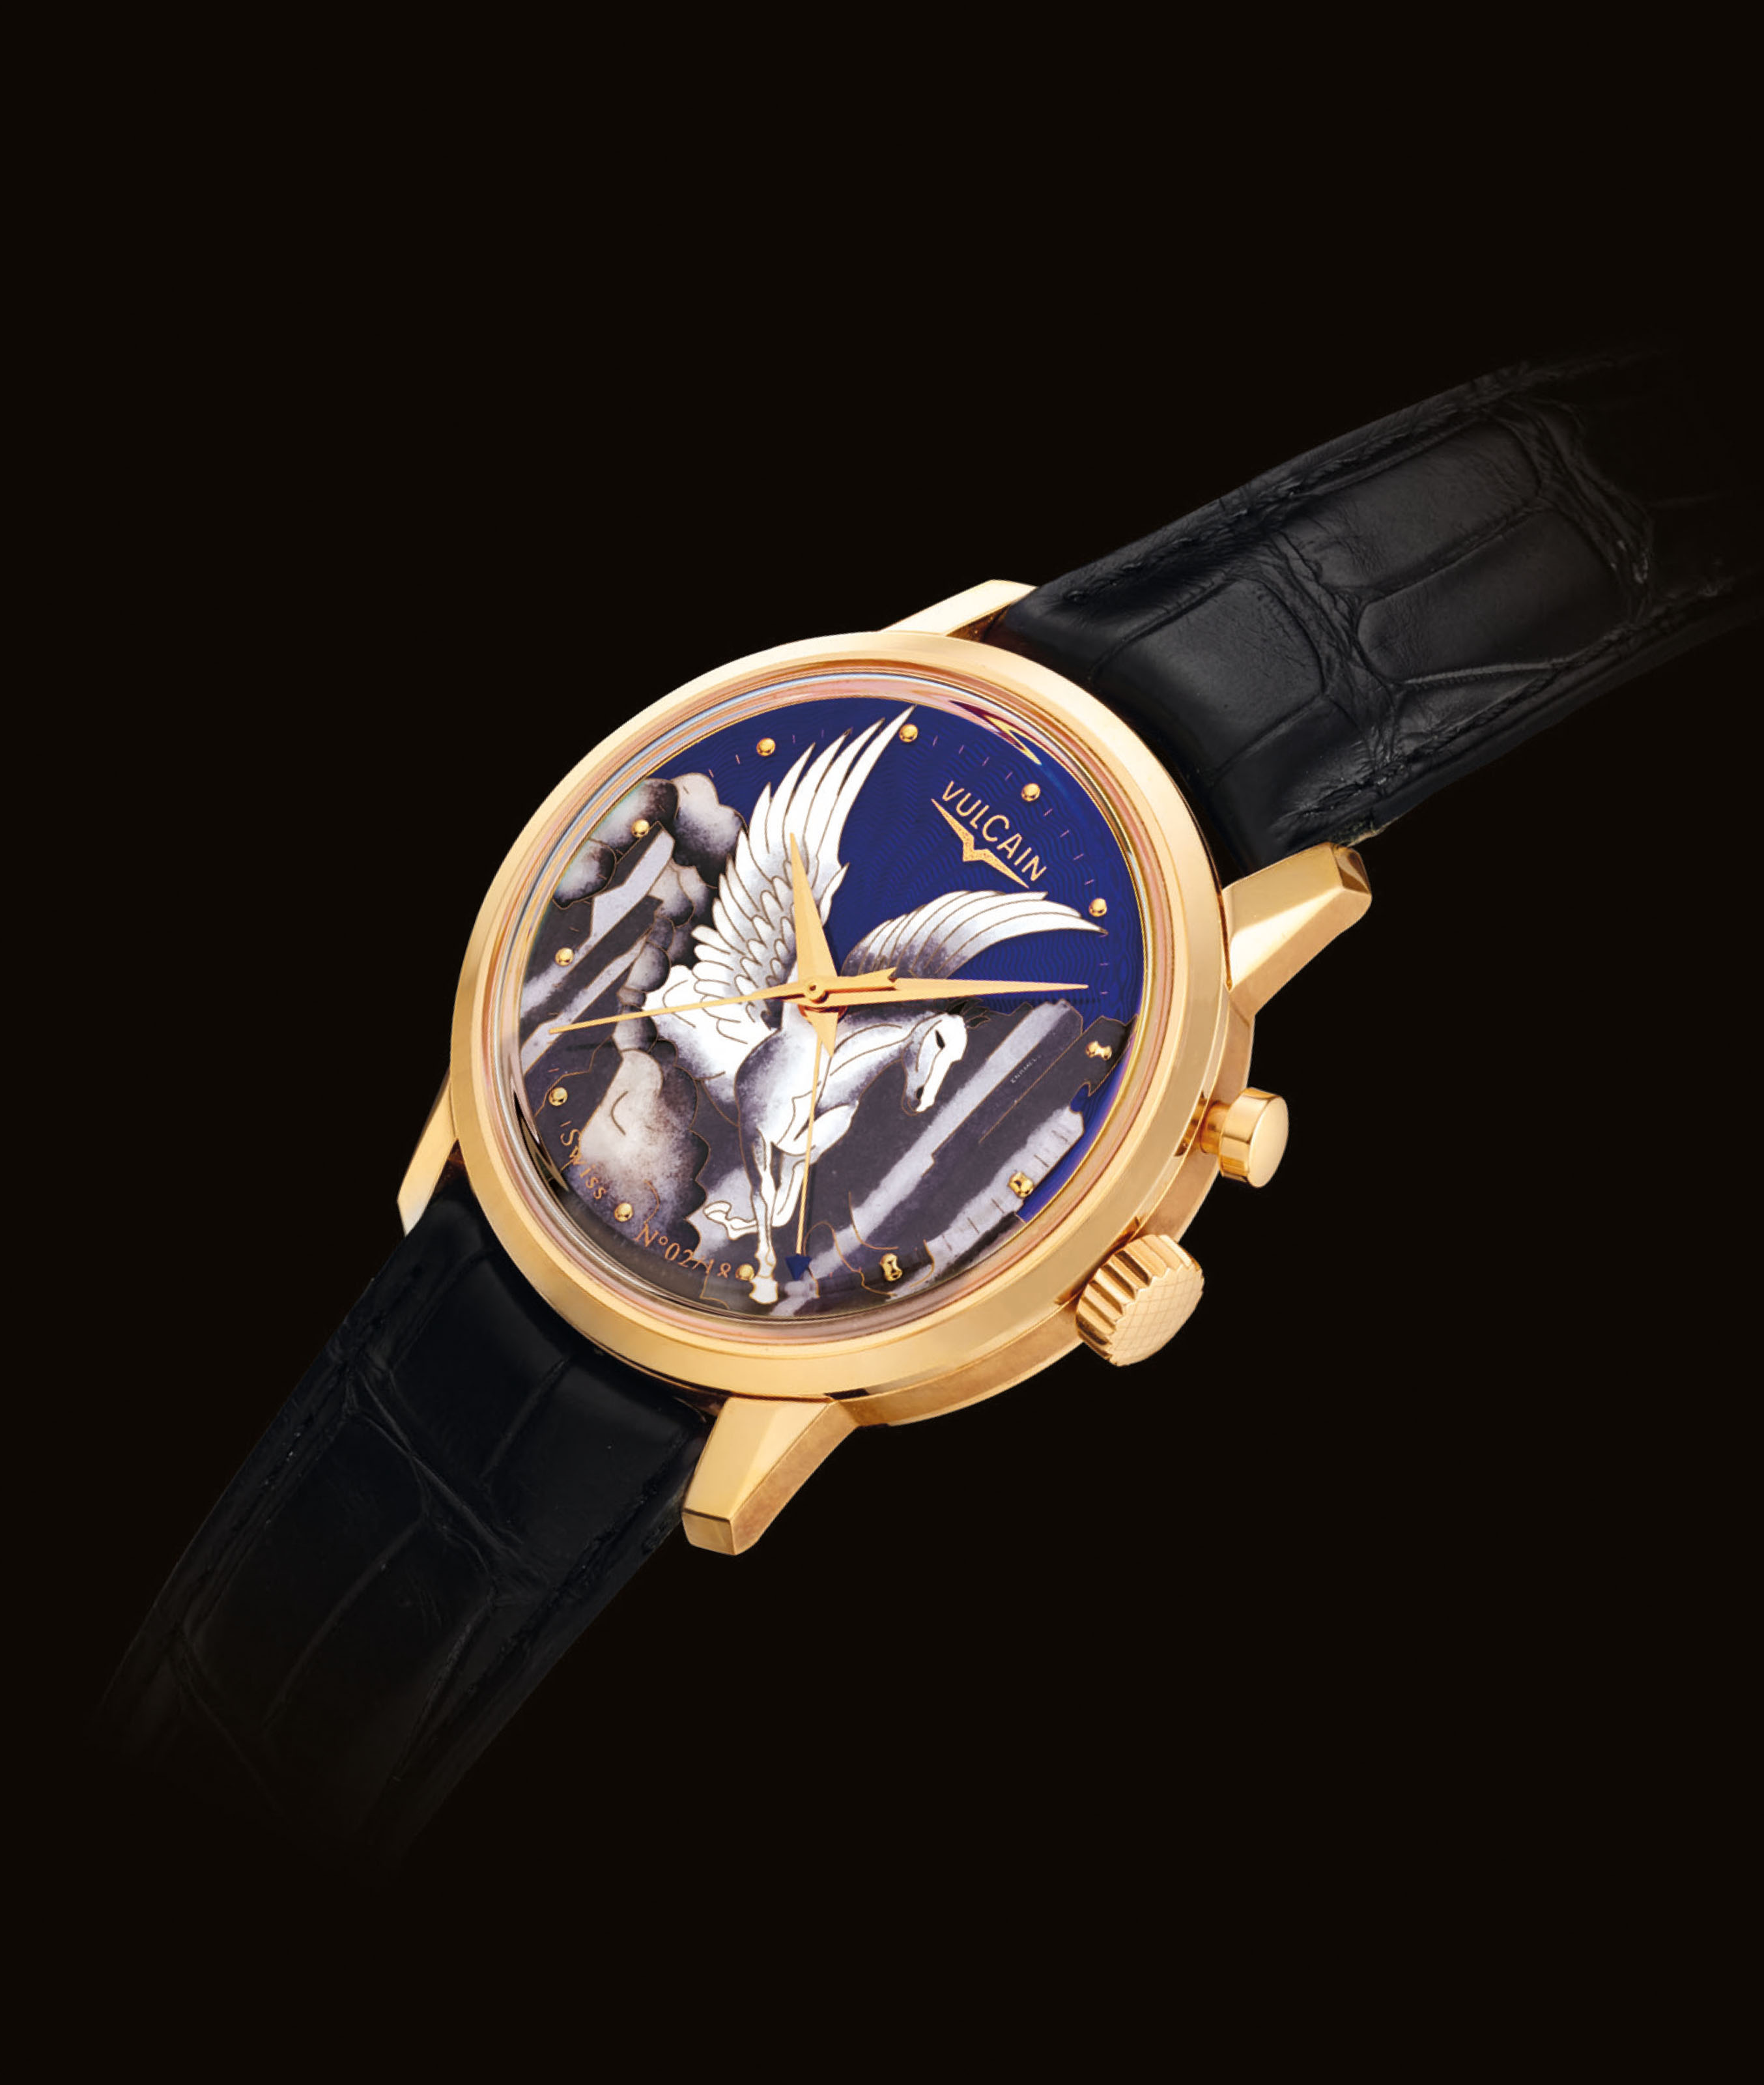 VULCAIN. A FINE AND RARE 18K PINK GOLD AUTOMATIC LIMITED EDITION WRISTWATCH WITH SWEEP CENTRE SECONDS, ALARM AND CLOISONNÉ ENAMEL DIAL